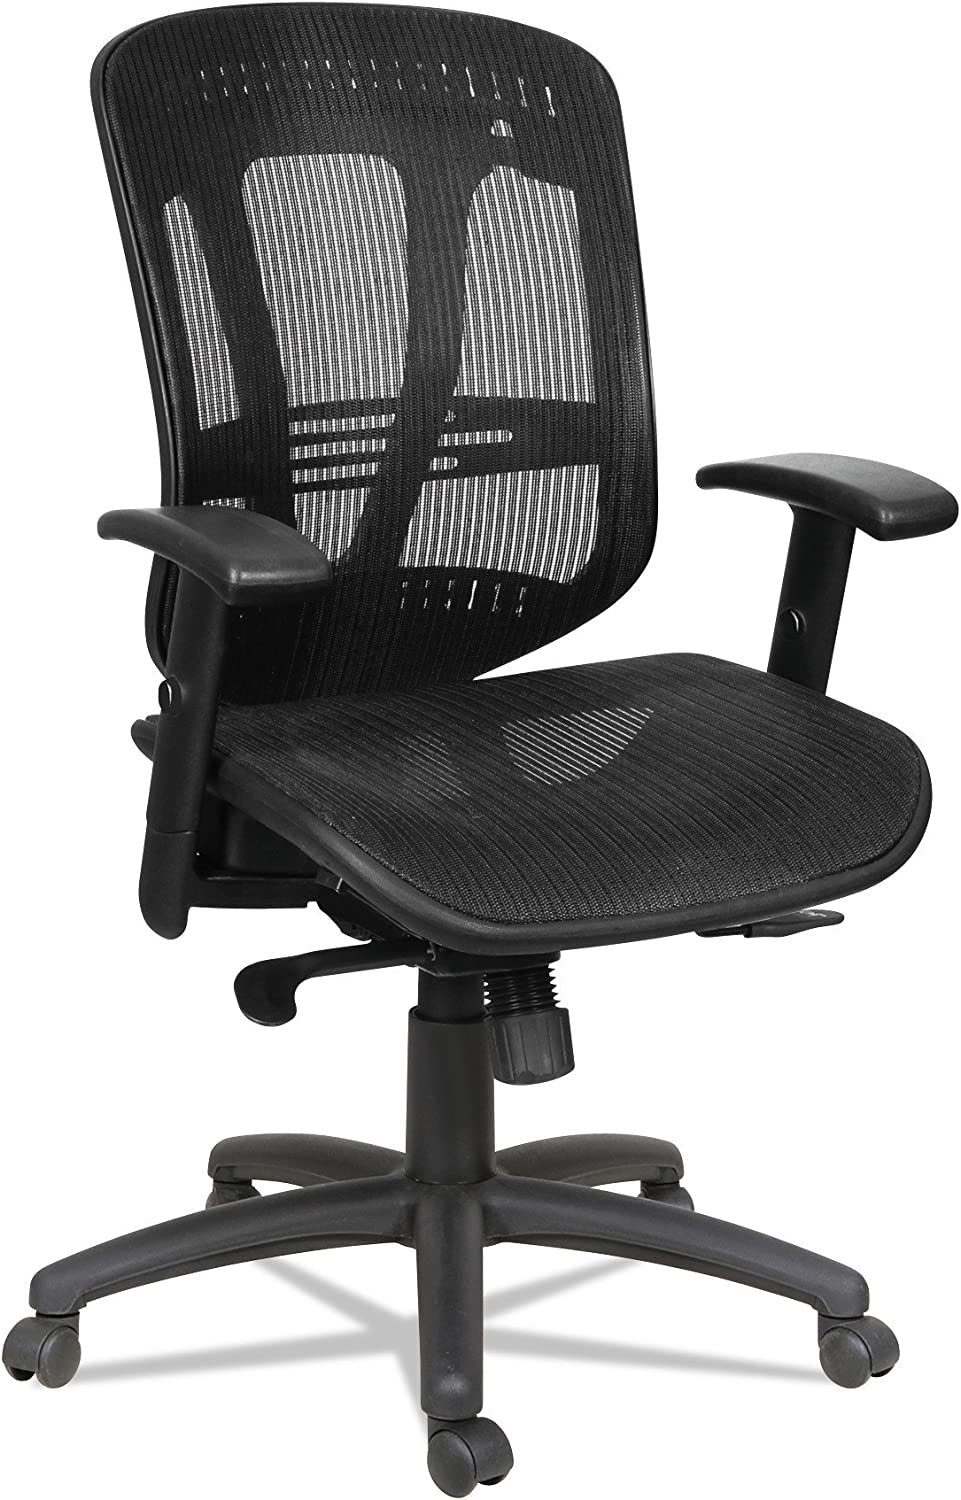 Alera Eon Series Multifunction Wire Mech, Mid-Back Suspension Mesh Chair, Black